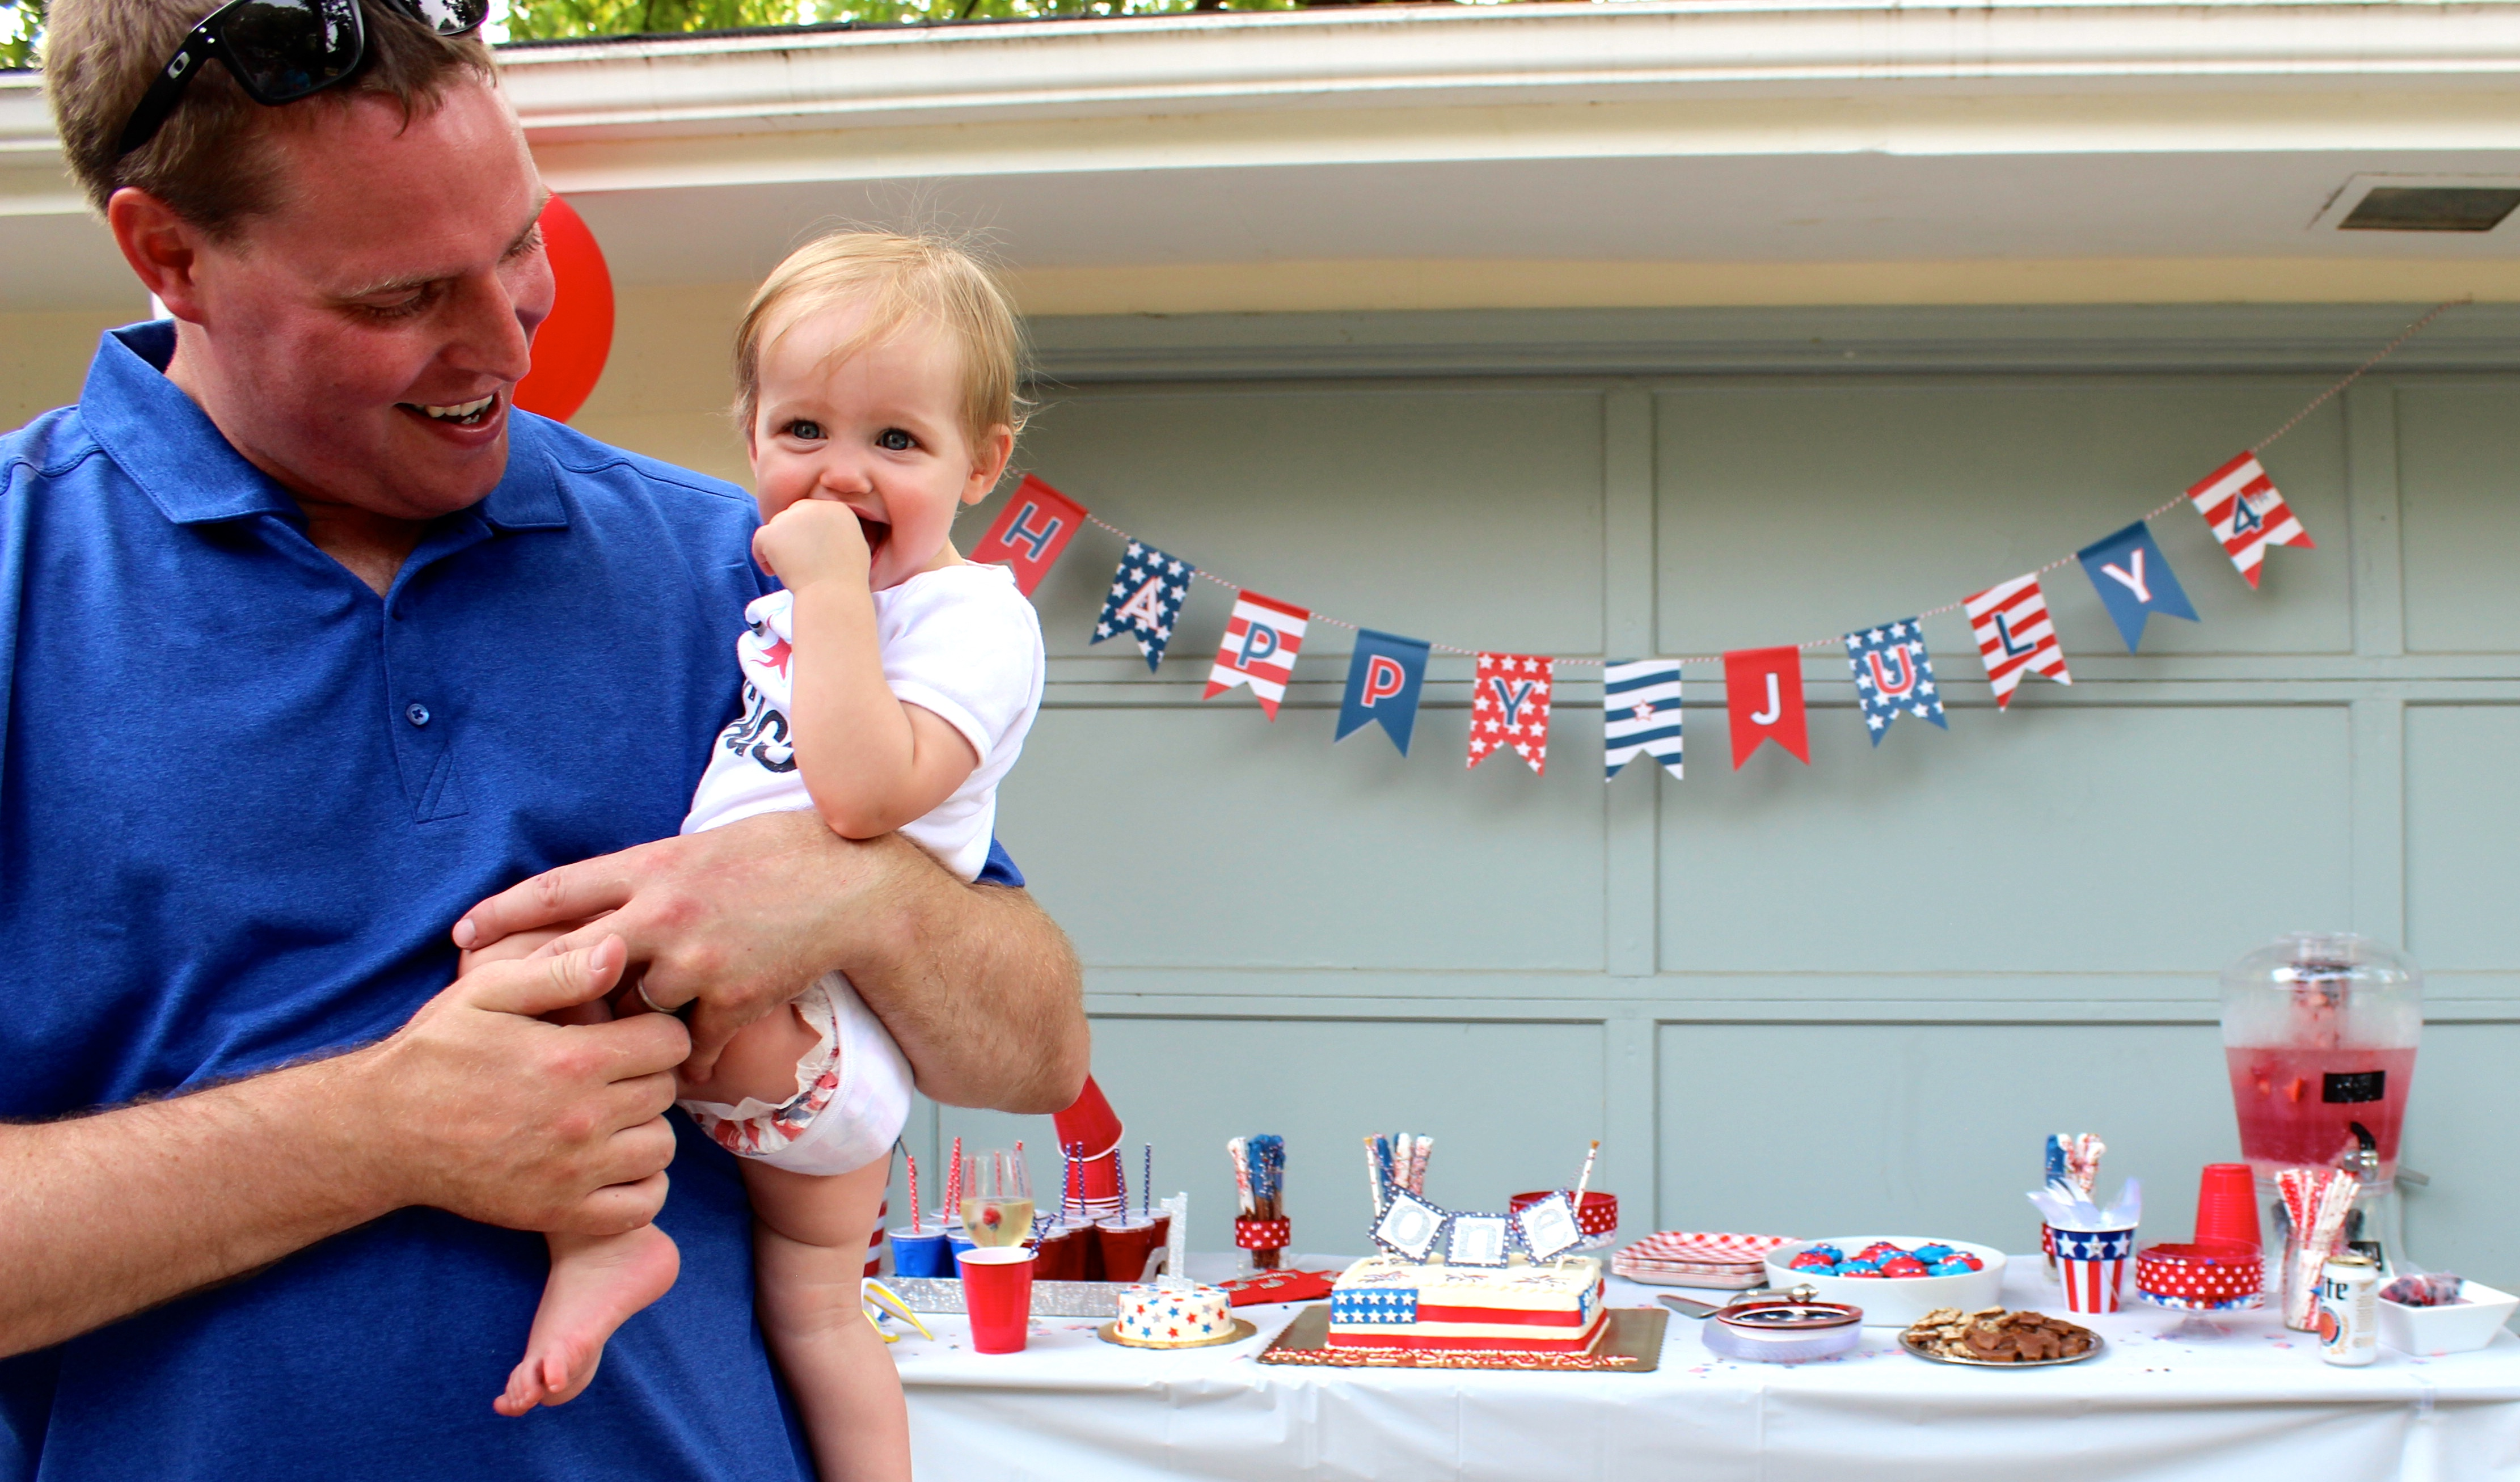 Taylor was a very patriotic birthday girl - even down to the Honest diapers!